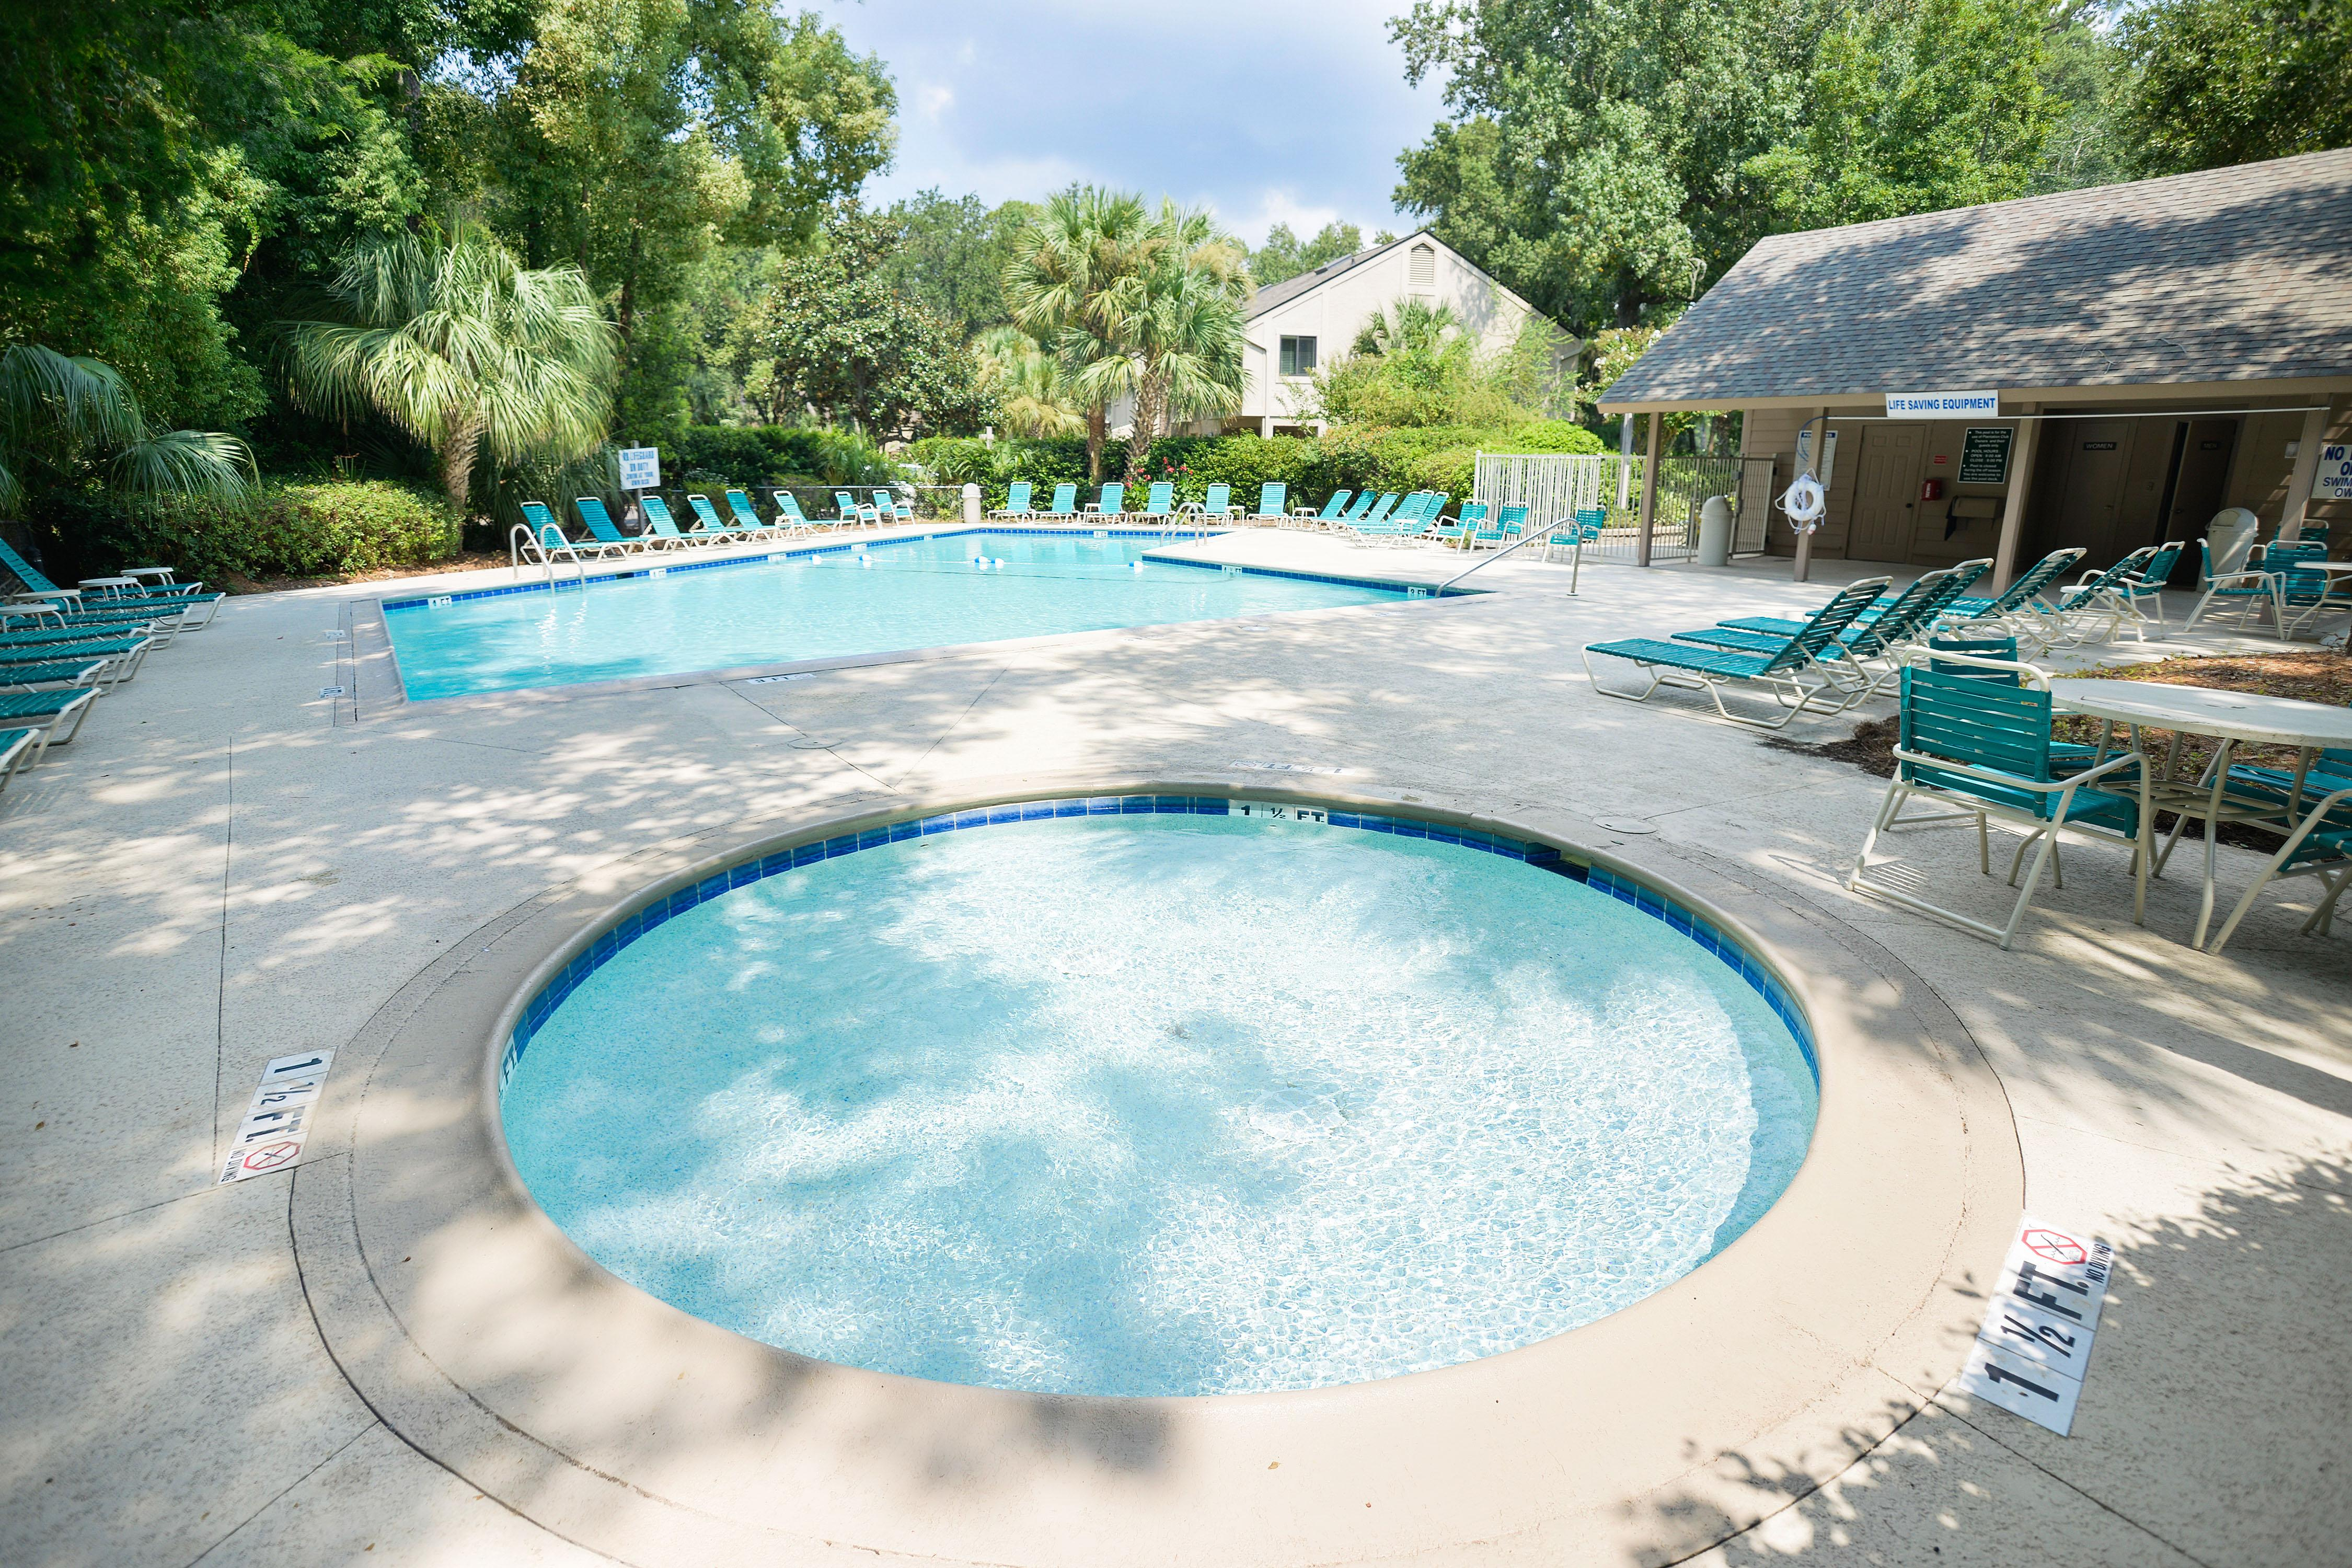 A community pool area is open year-round and offers a kiddie pool and unheated pool.